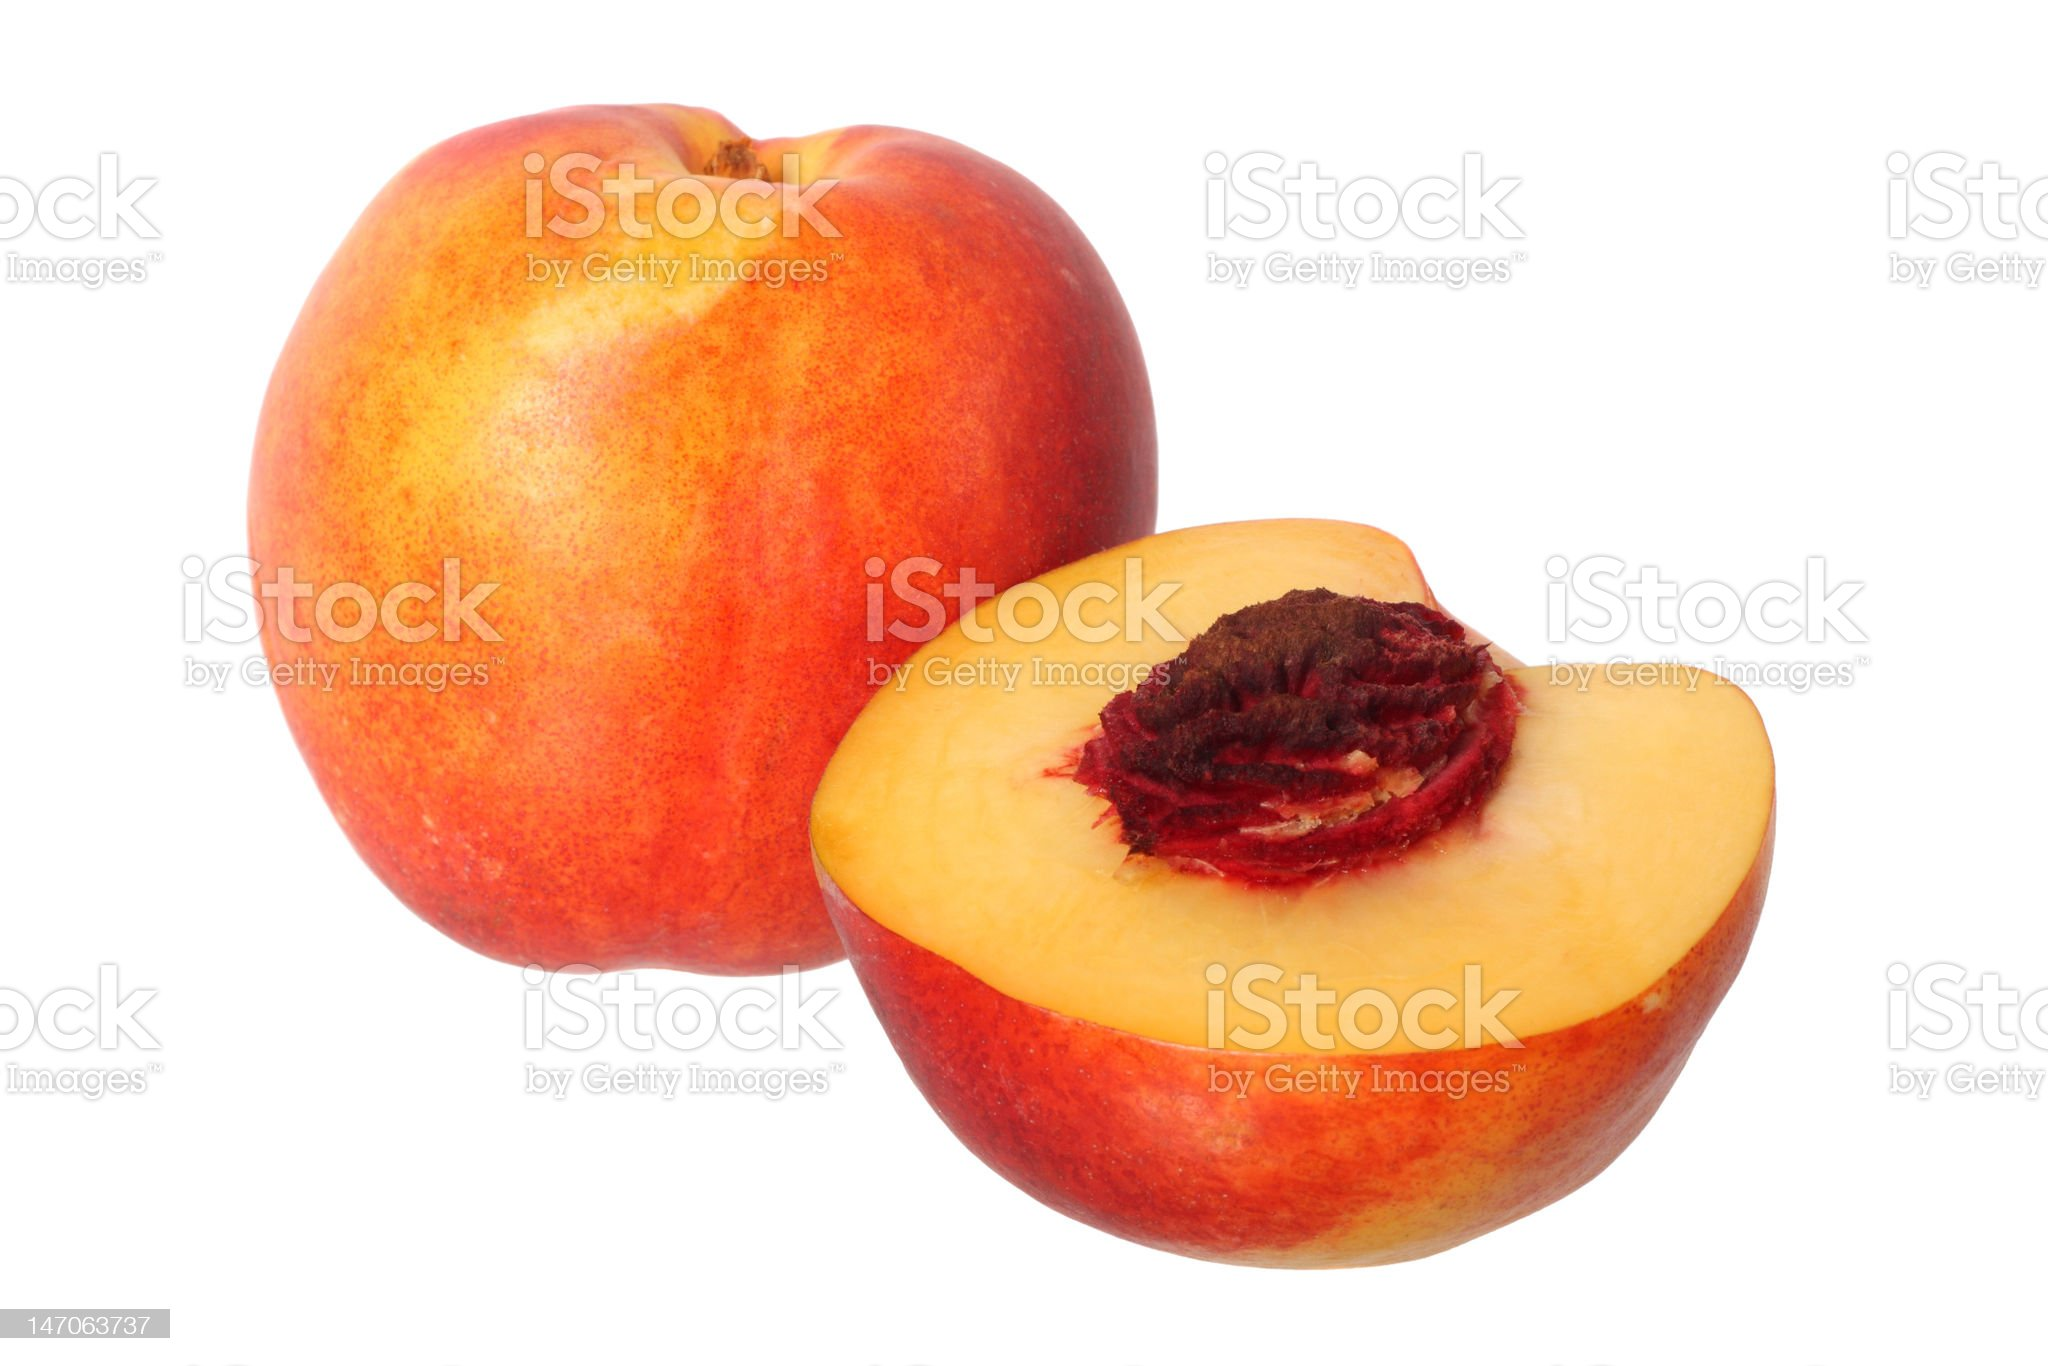 Nectarine fruit royalty-free stock photo